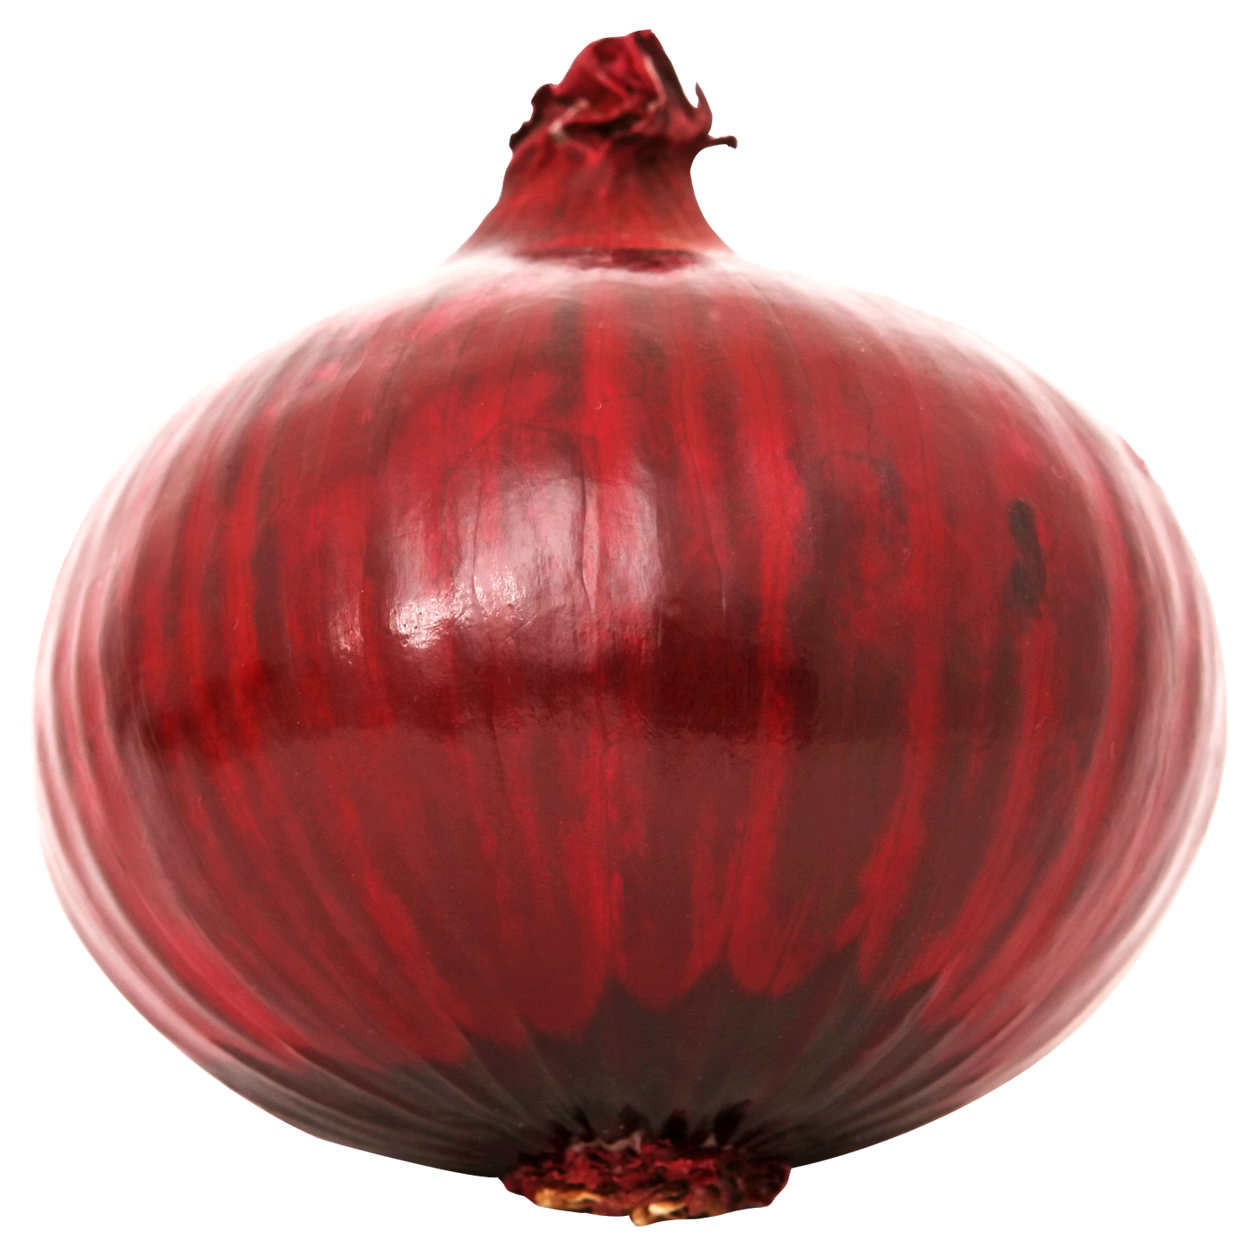 jpg freeuse library Red Onion Transparent PNG